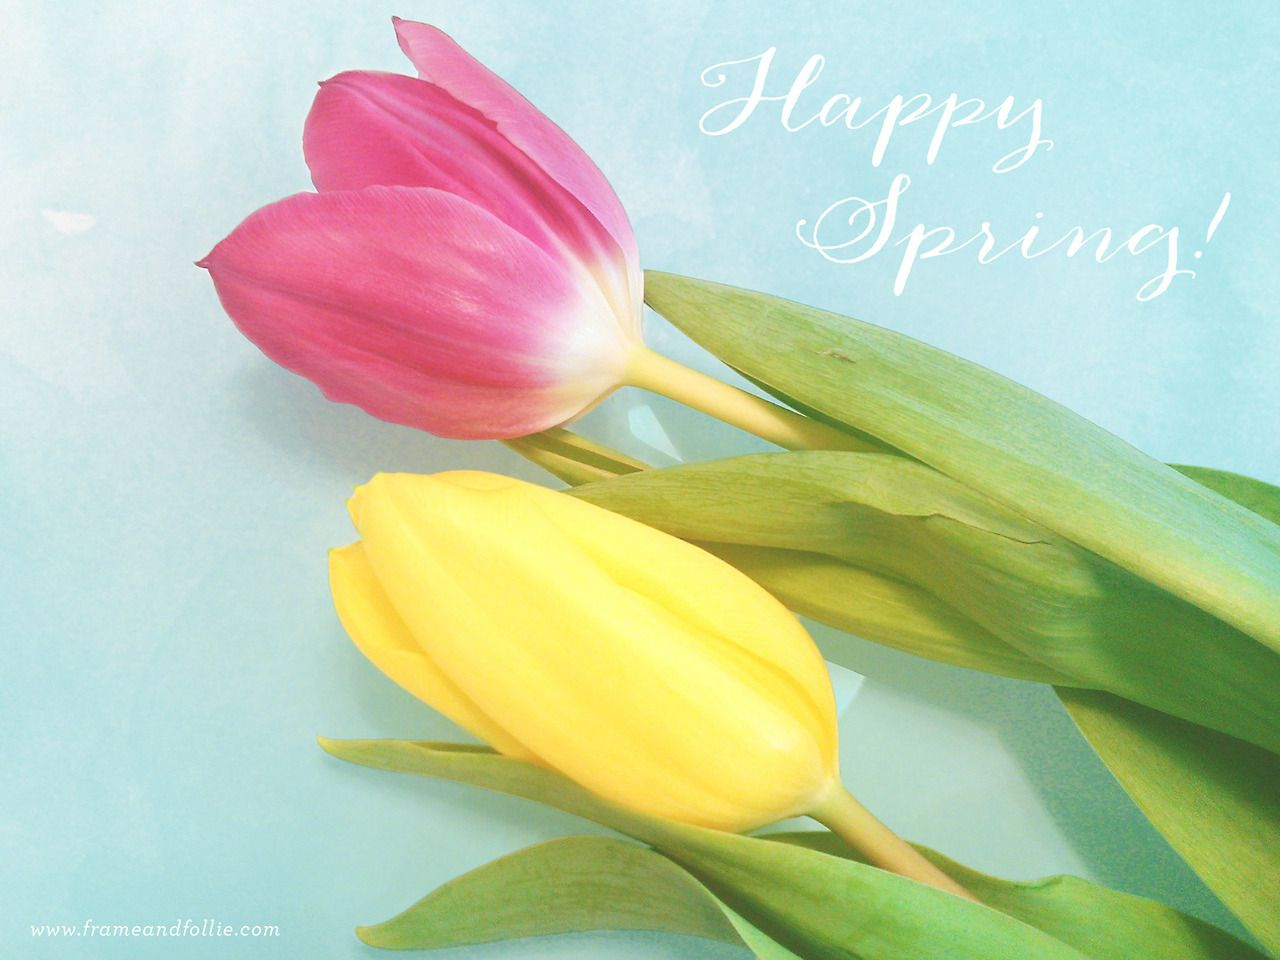 HAPPY SPRING! ~ Spring has sprung, and not a moment too soon! Wishing everyone a wonderful start to the season!